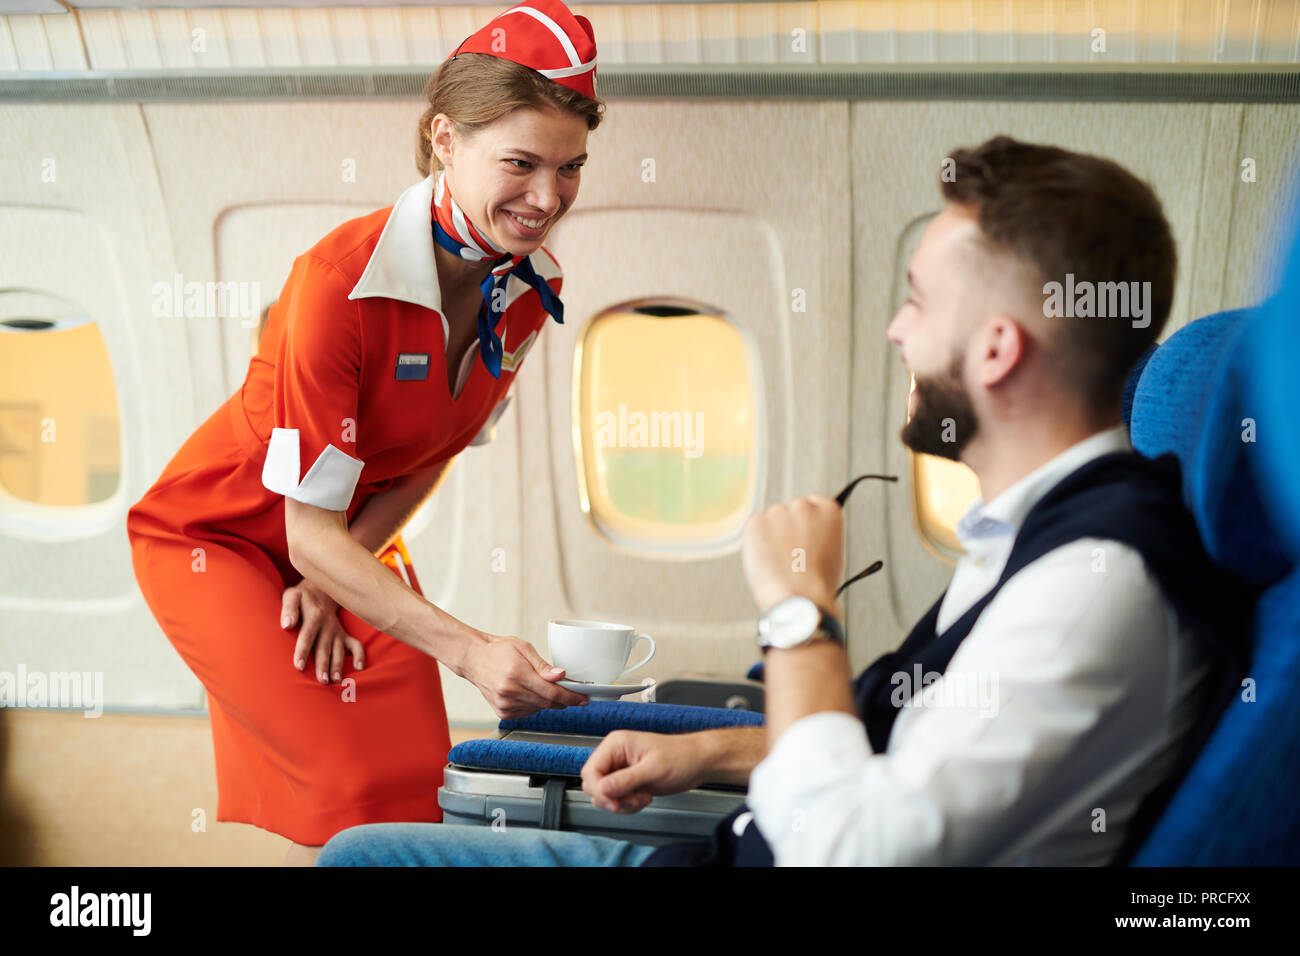 Flight Attendant at Work - Stock Image